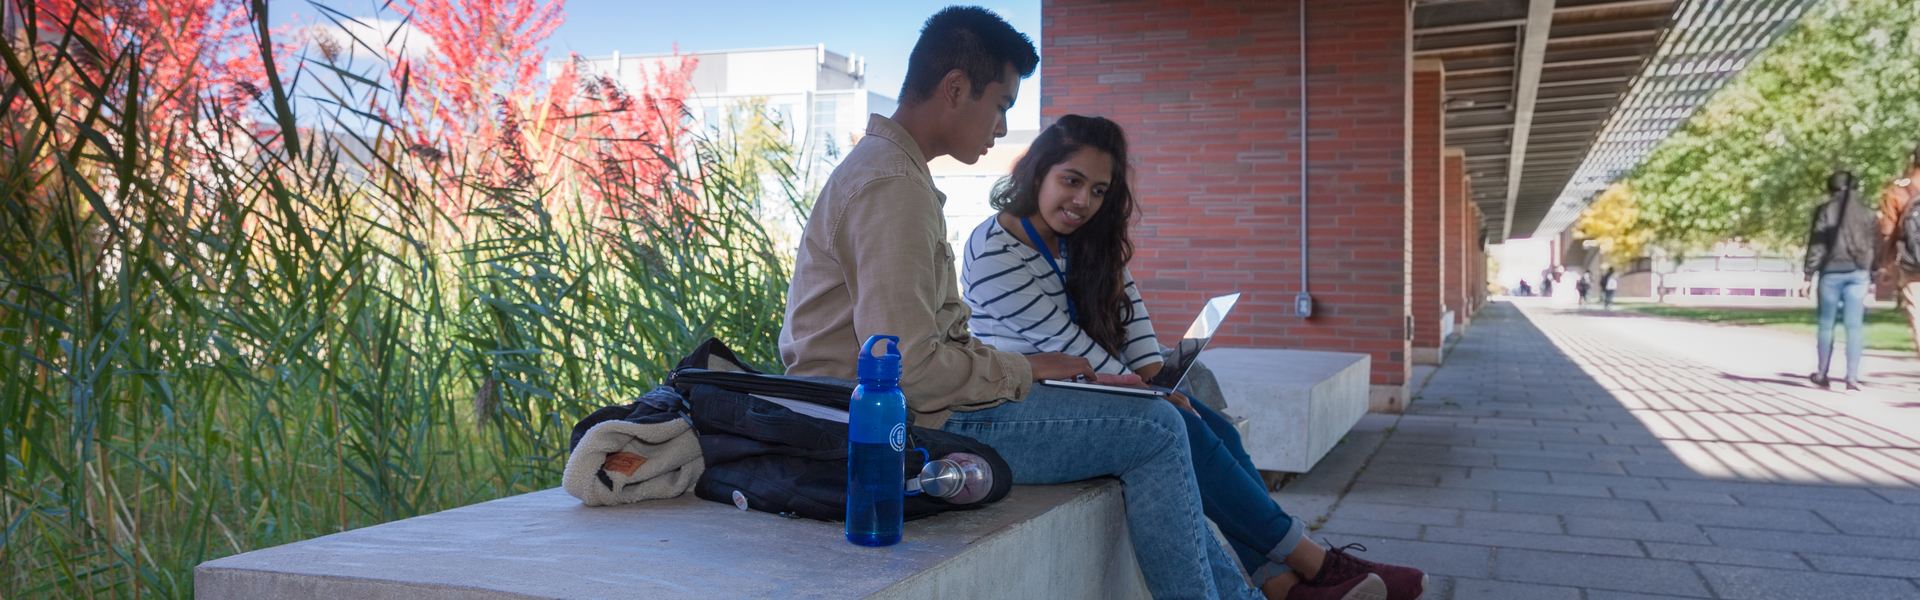 Students outside looking at a laptop